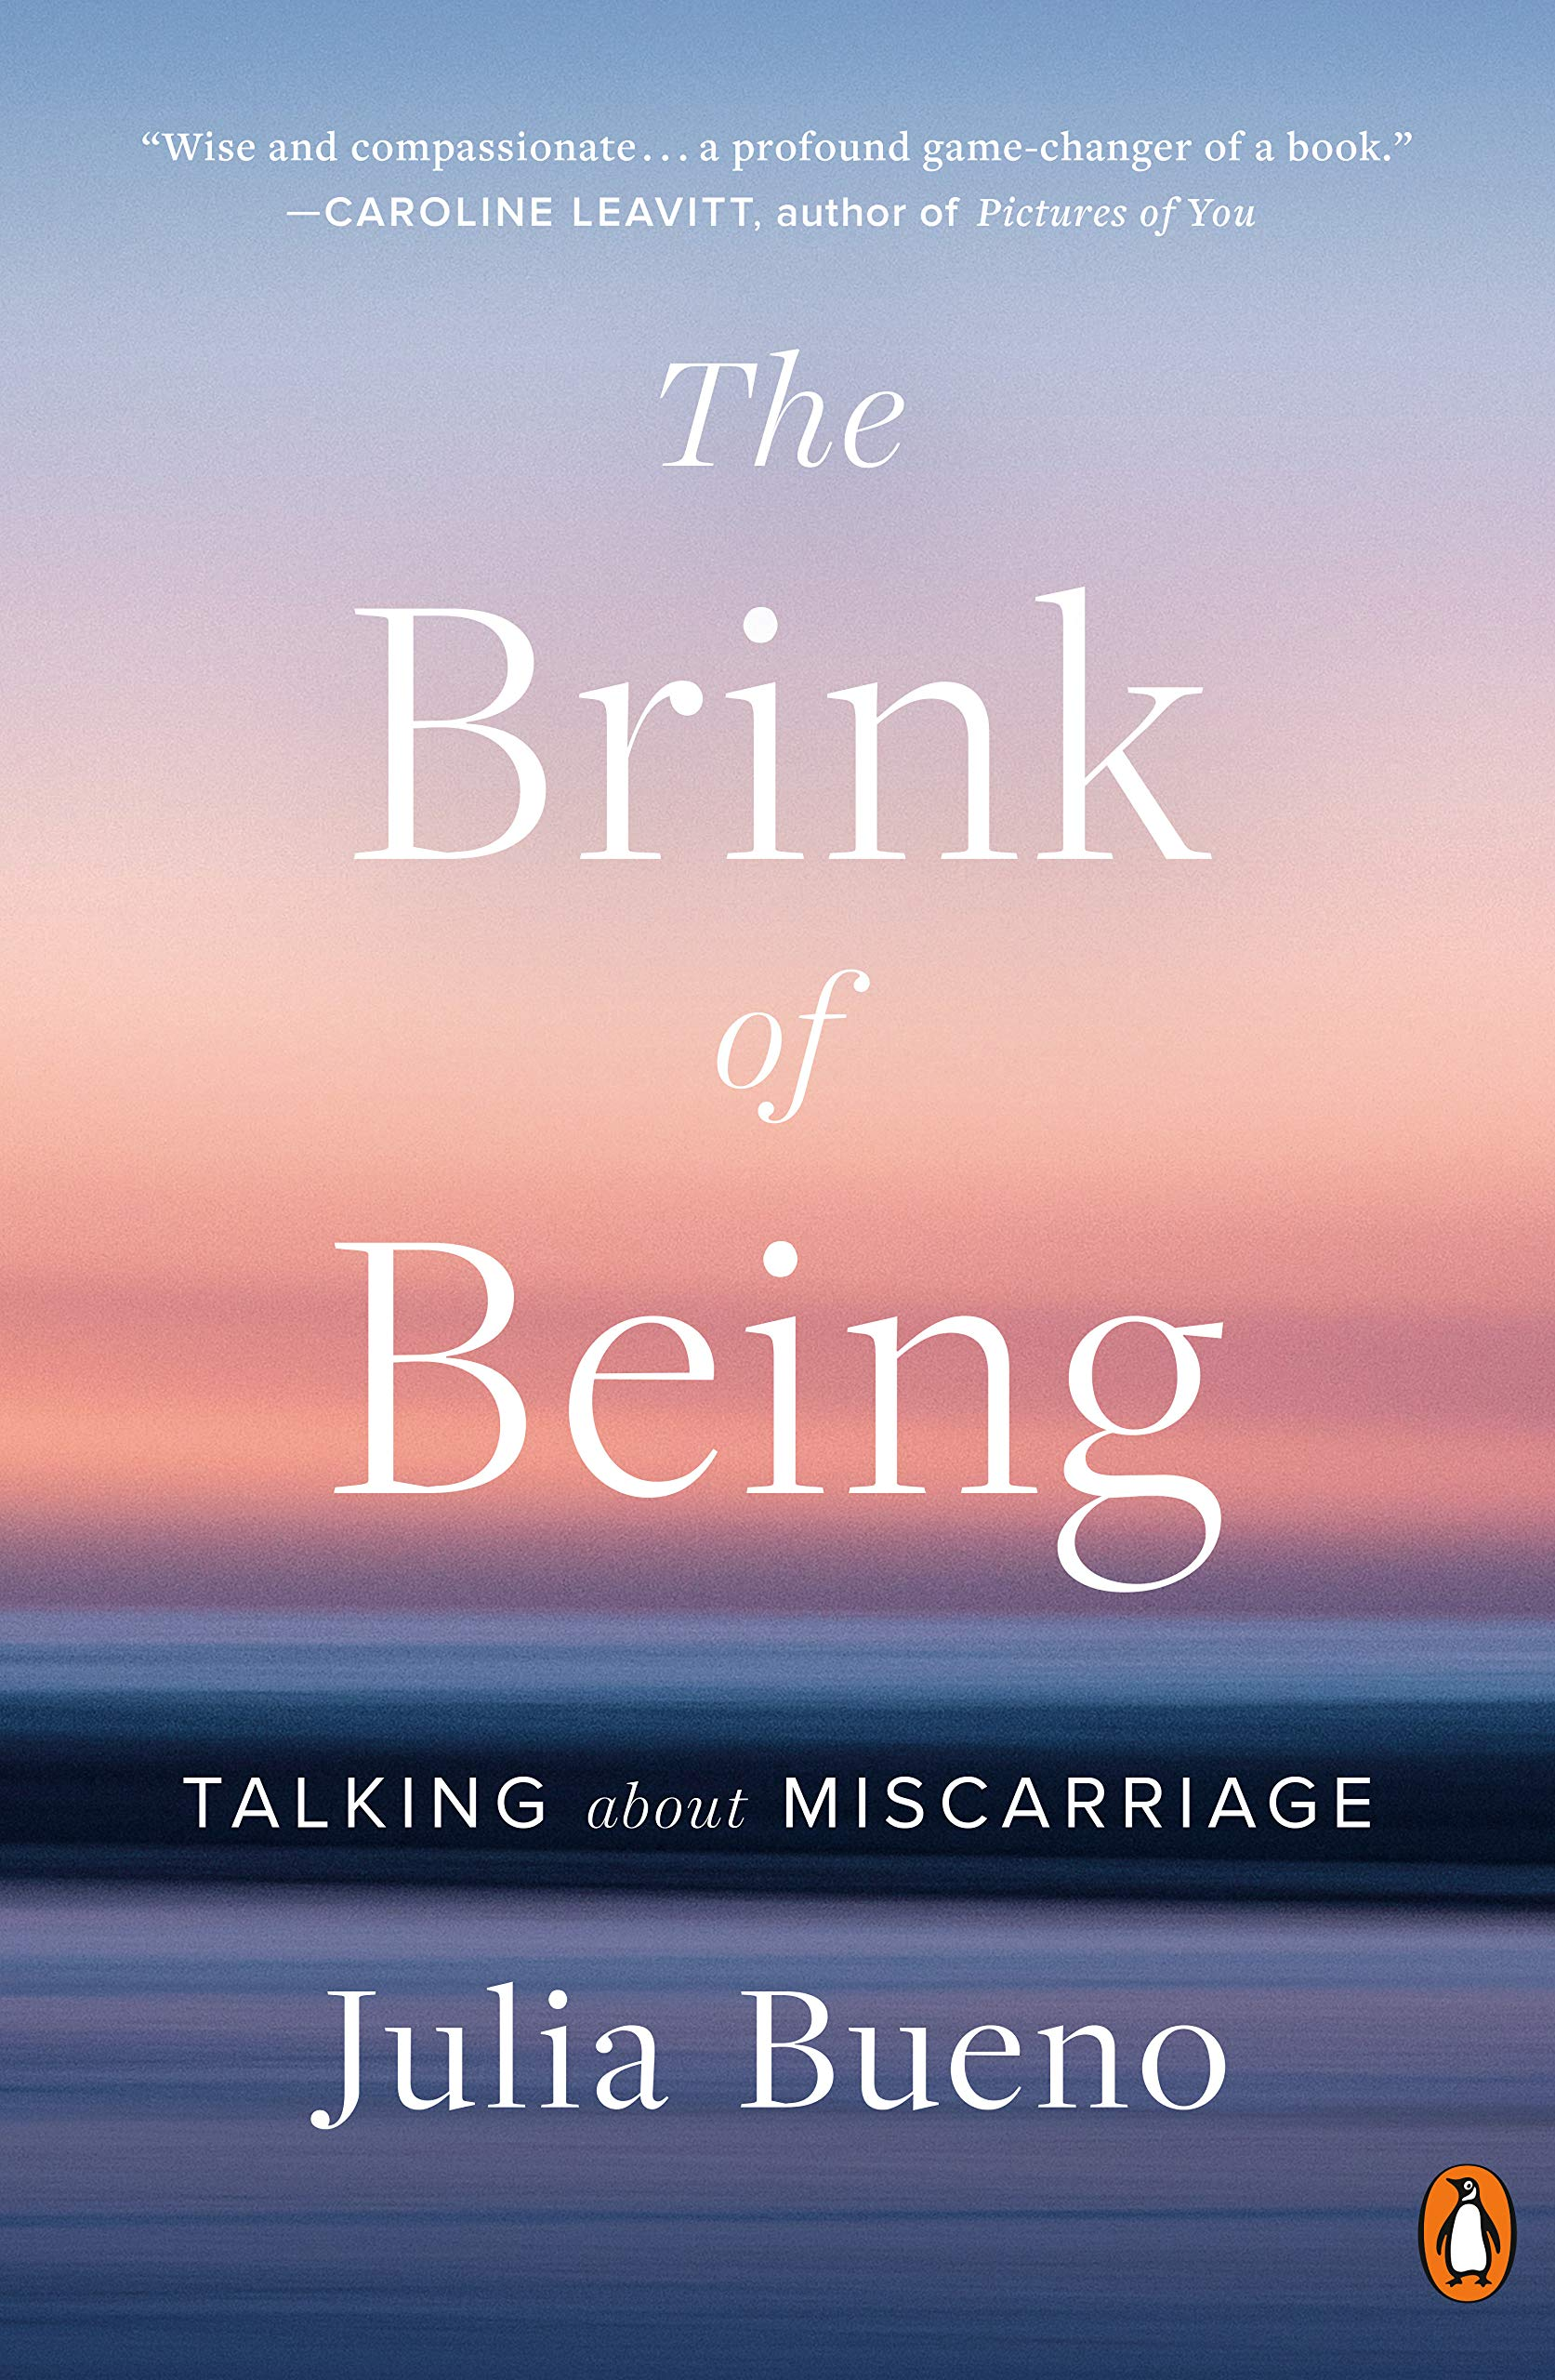 The Brink of Being: Talking About Miscarriage: Bueno, Julia book cover shown over sunset image in pink, purple, and blue.